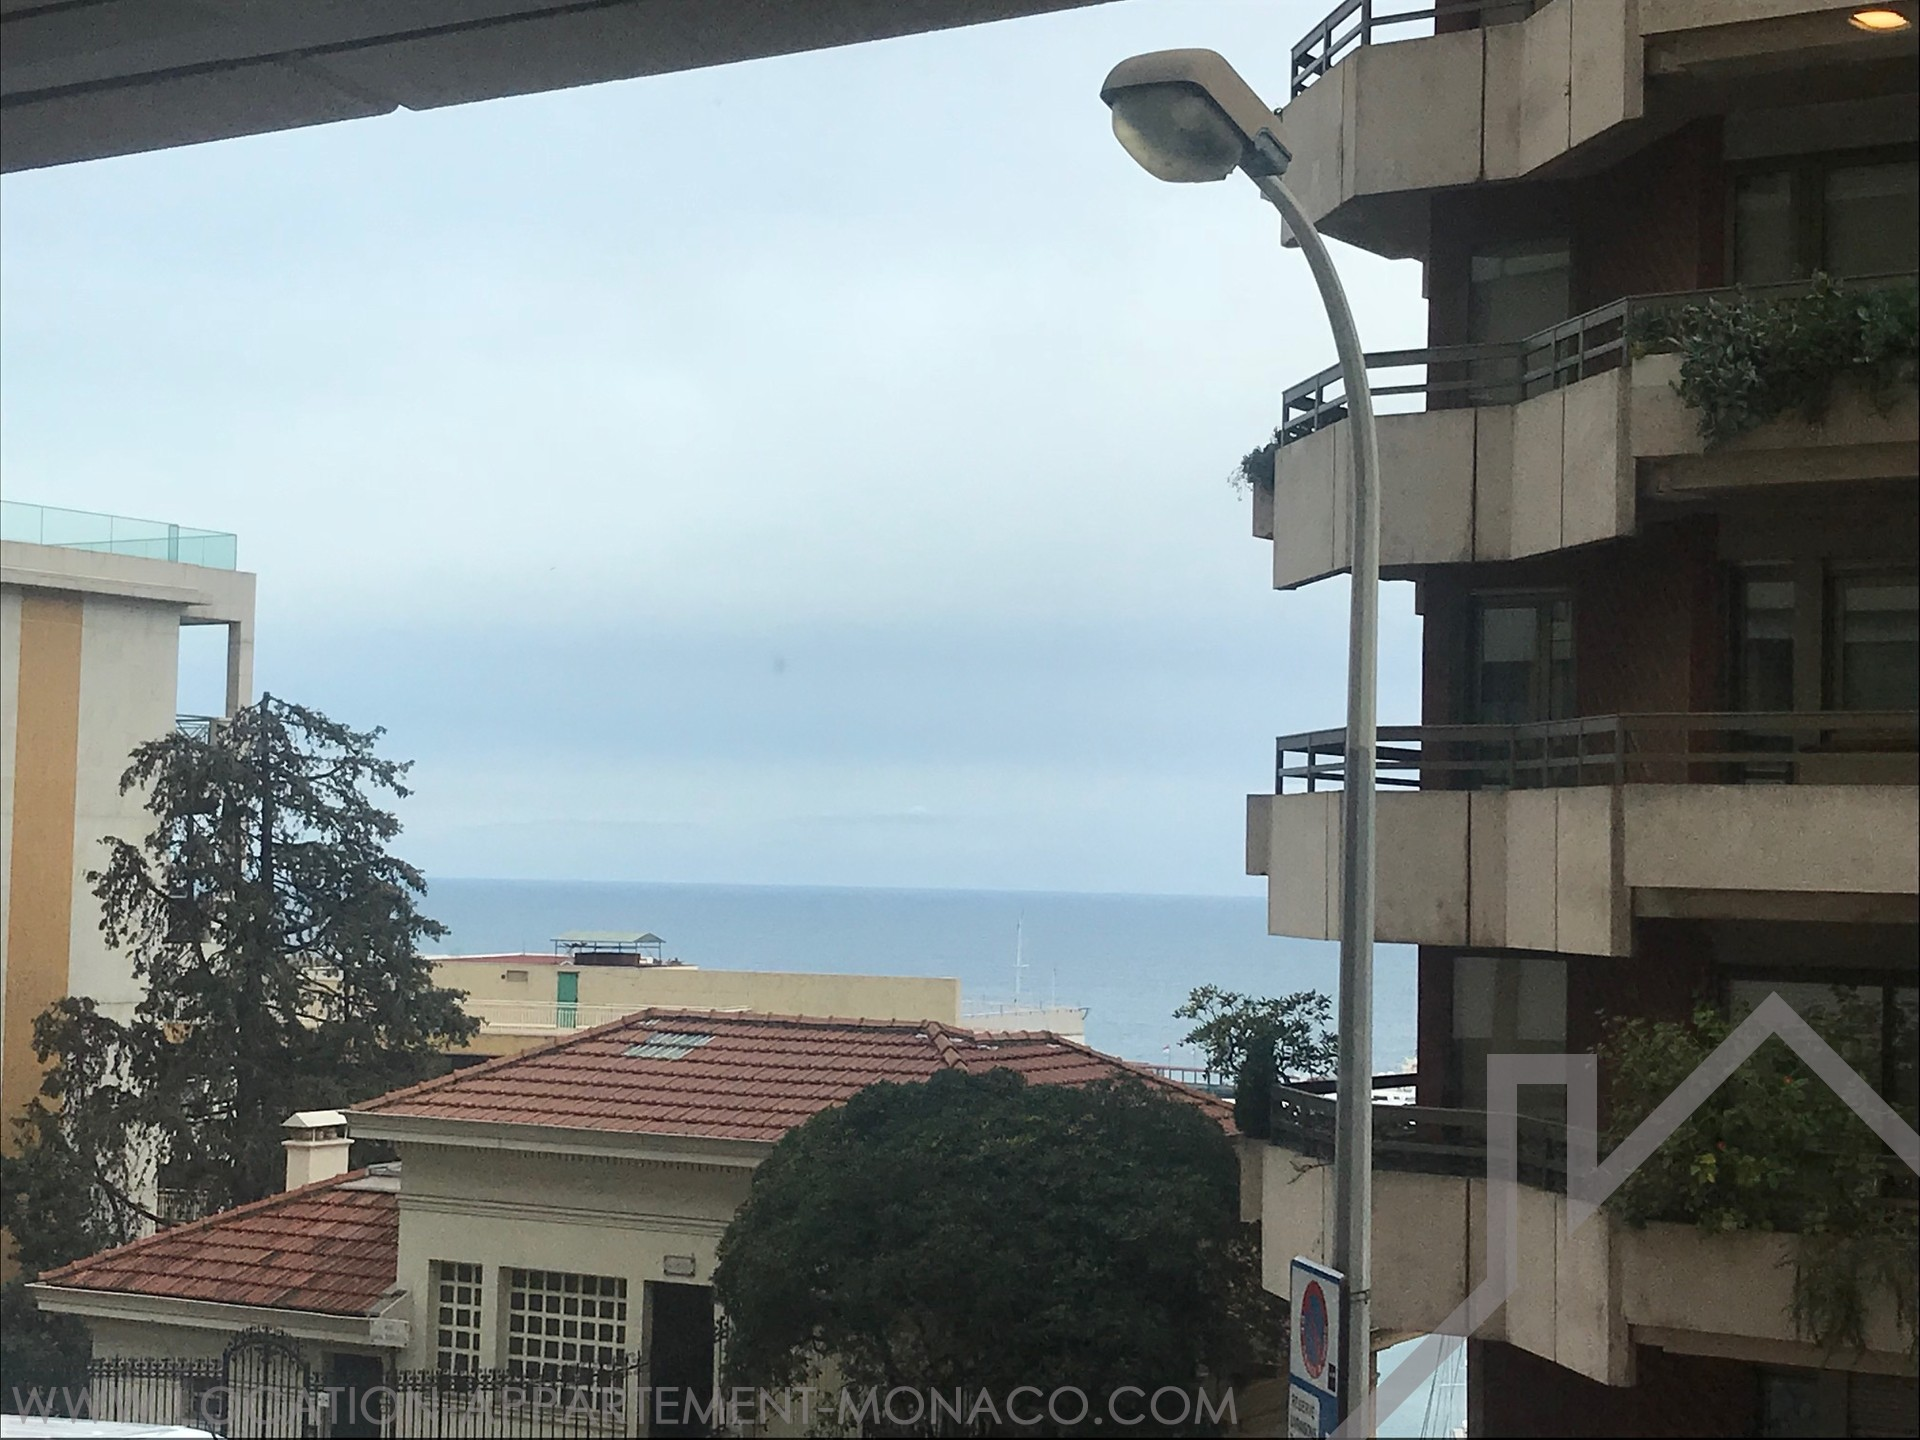 STUDIO USAGE MIXTE HERAKLEIA - Apartments for rent in Monaco